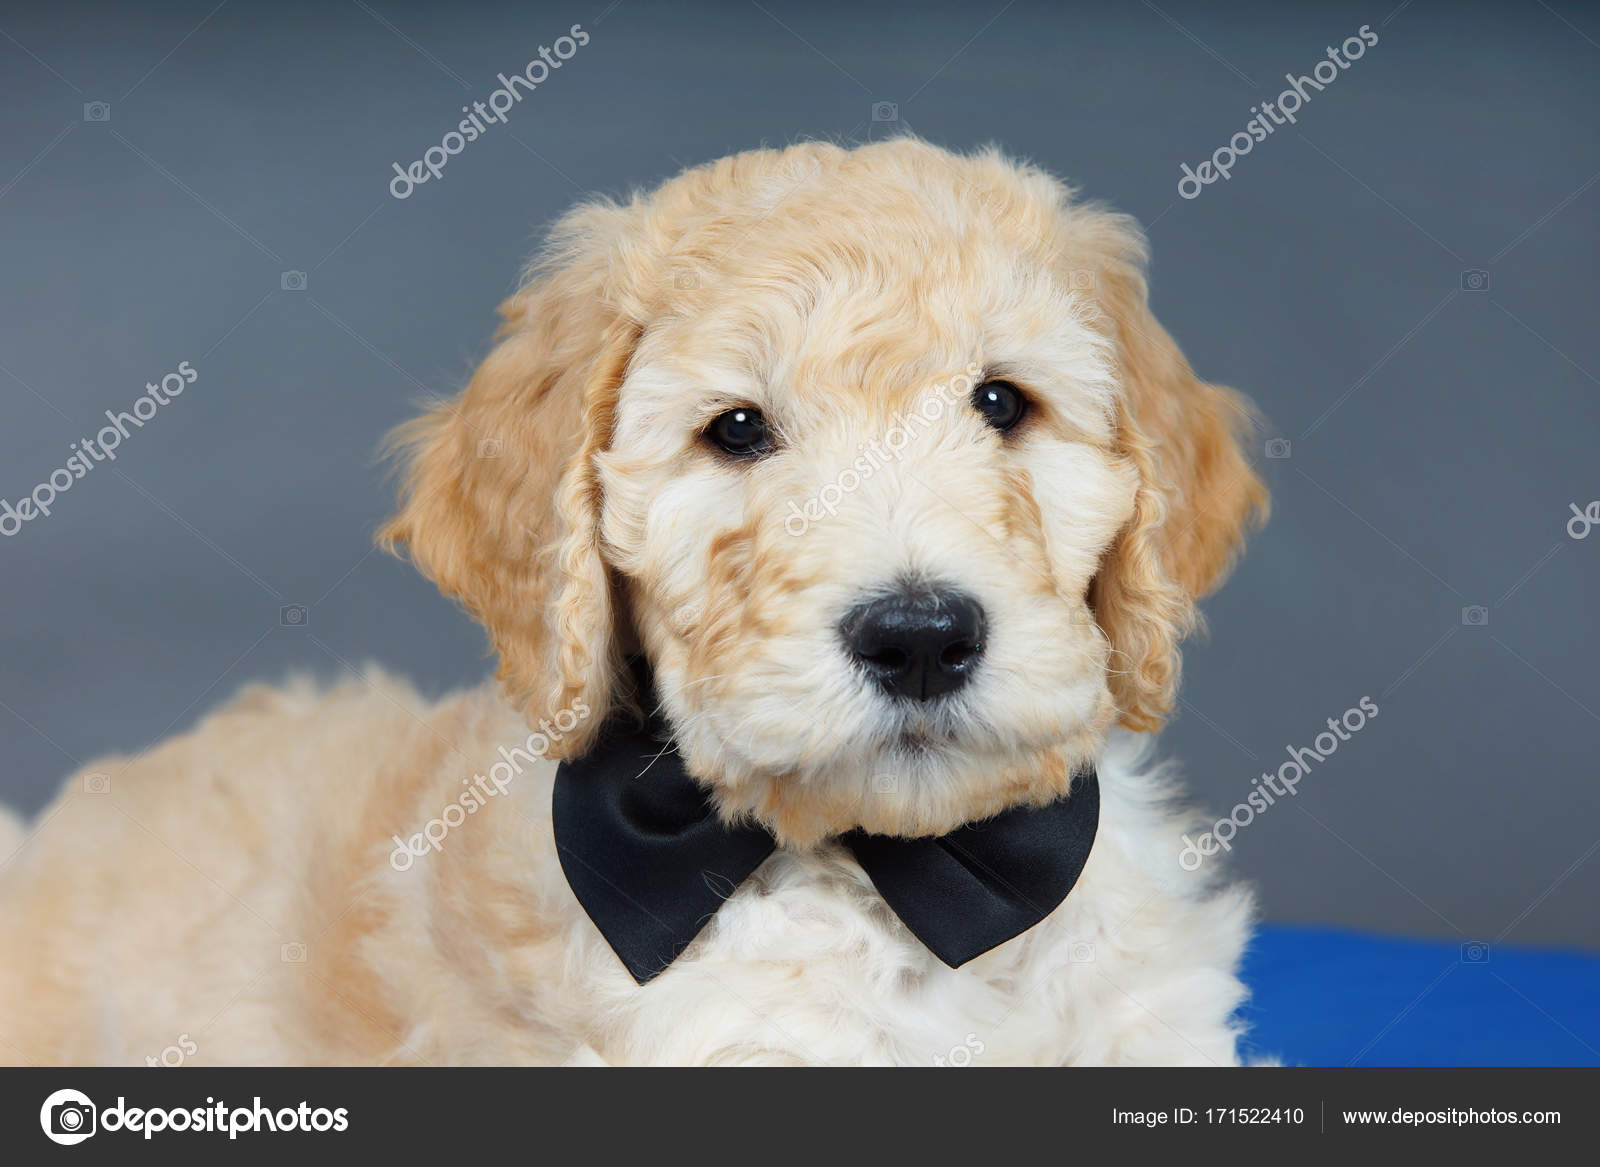 Pictures Black Goldendoodles Cute Goldendoodle Puppy With